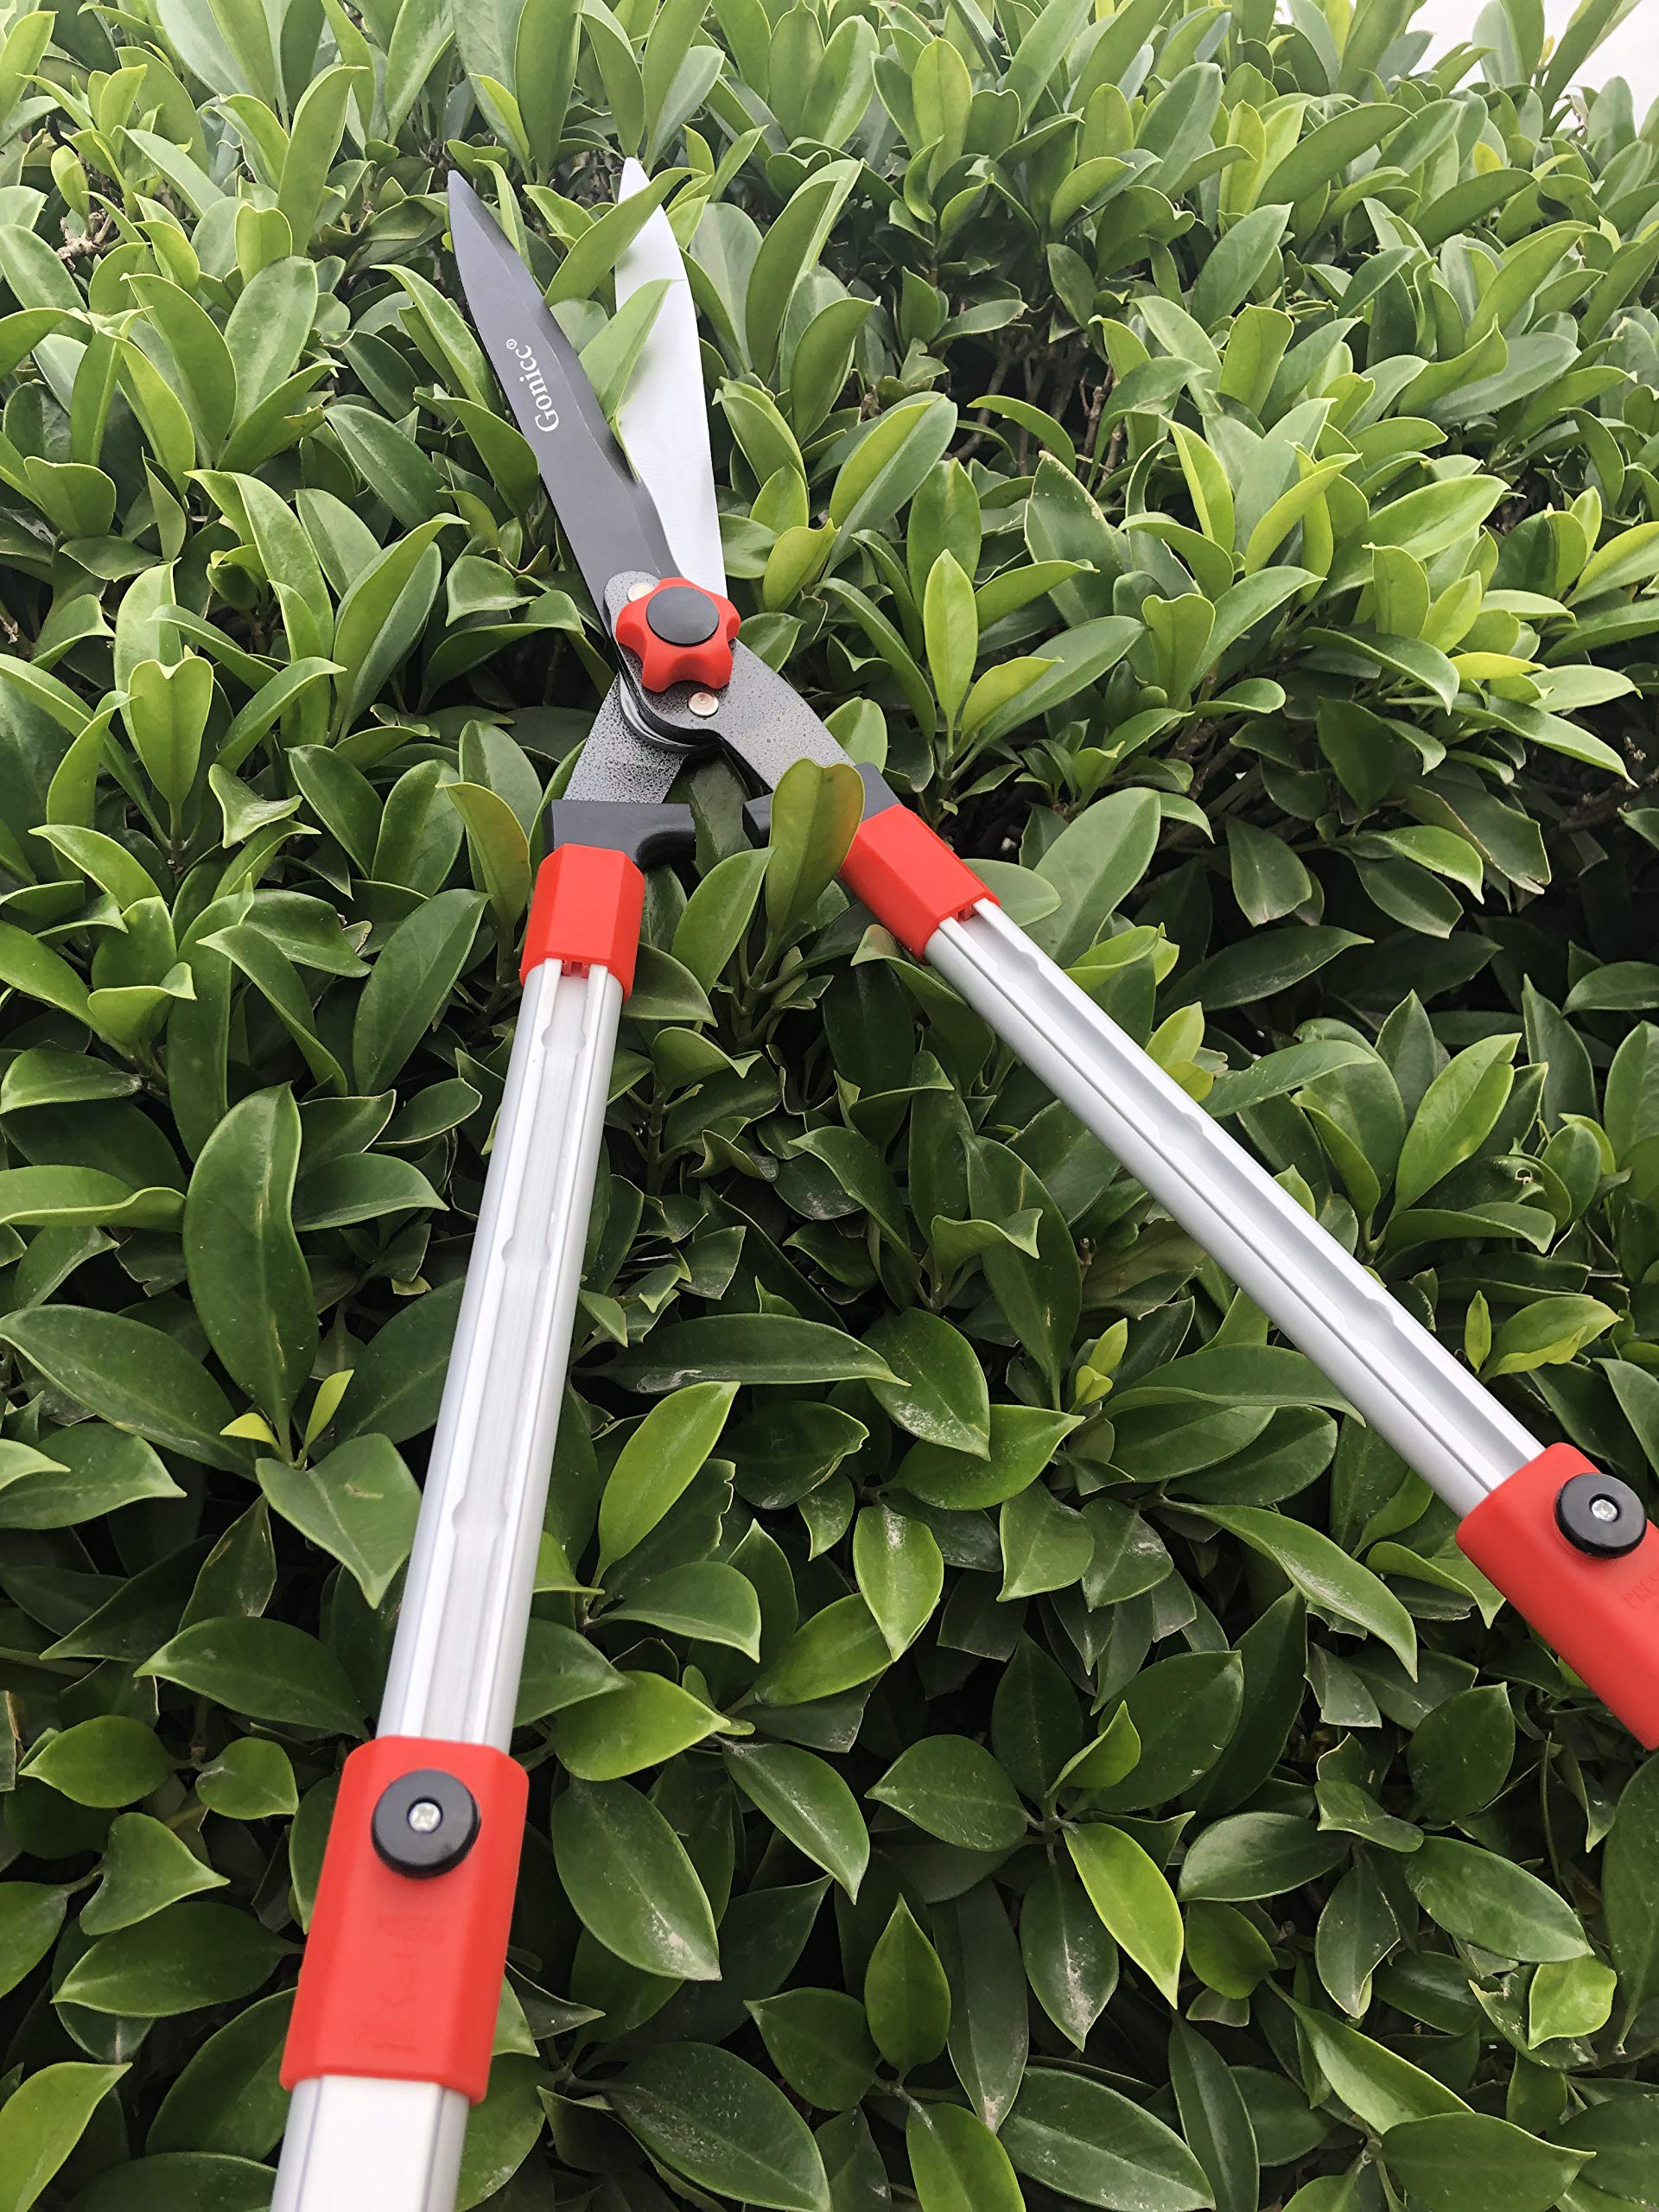 gonicc Professional Adjustable 25''+ 8'' Hedge Shears. with Wavy SK-5 Steel Blade and Shock Absorbing Desig, Adjustable Blade Pressure, Garden Pruning Hand Hedge Trimmers Clippers Shears by gonicc (Image #5)